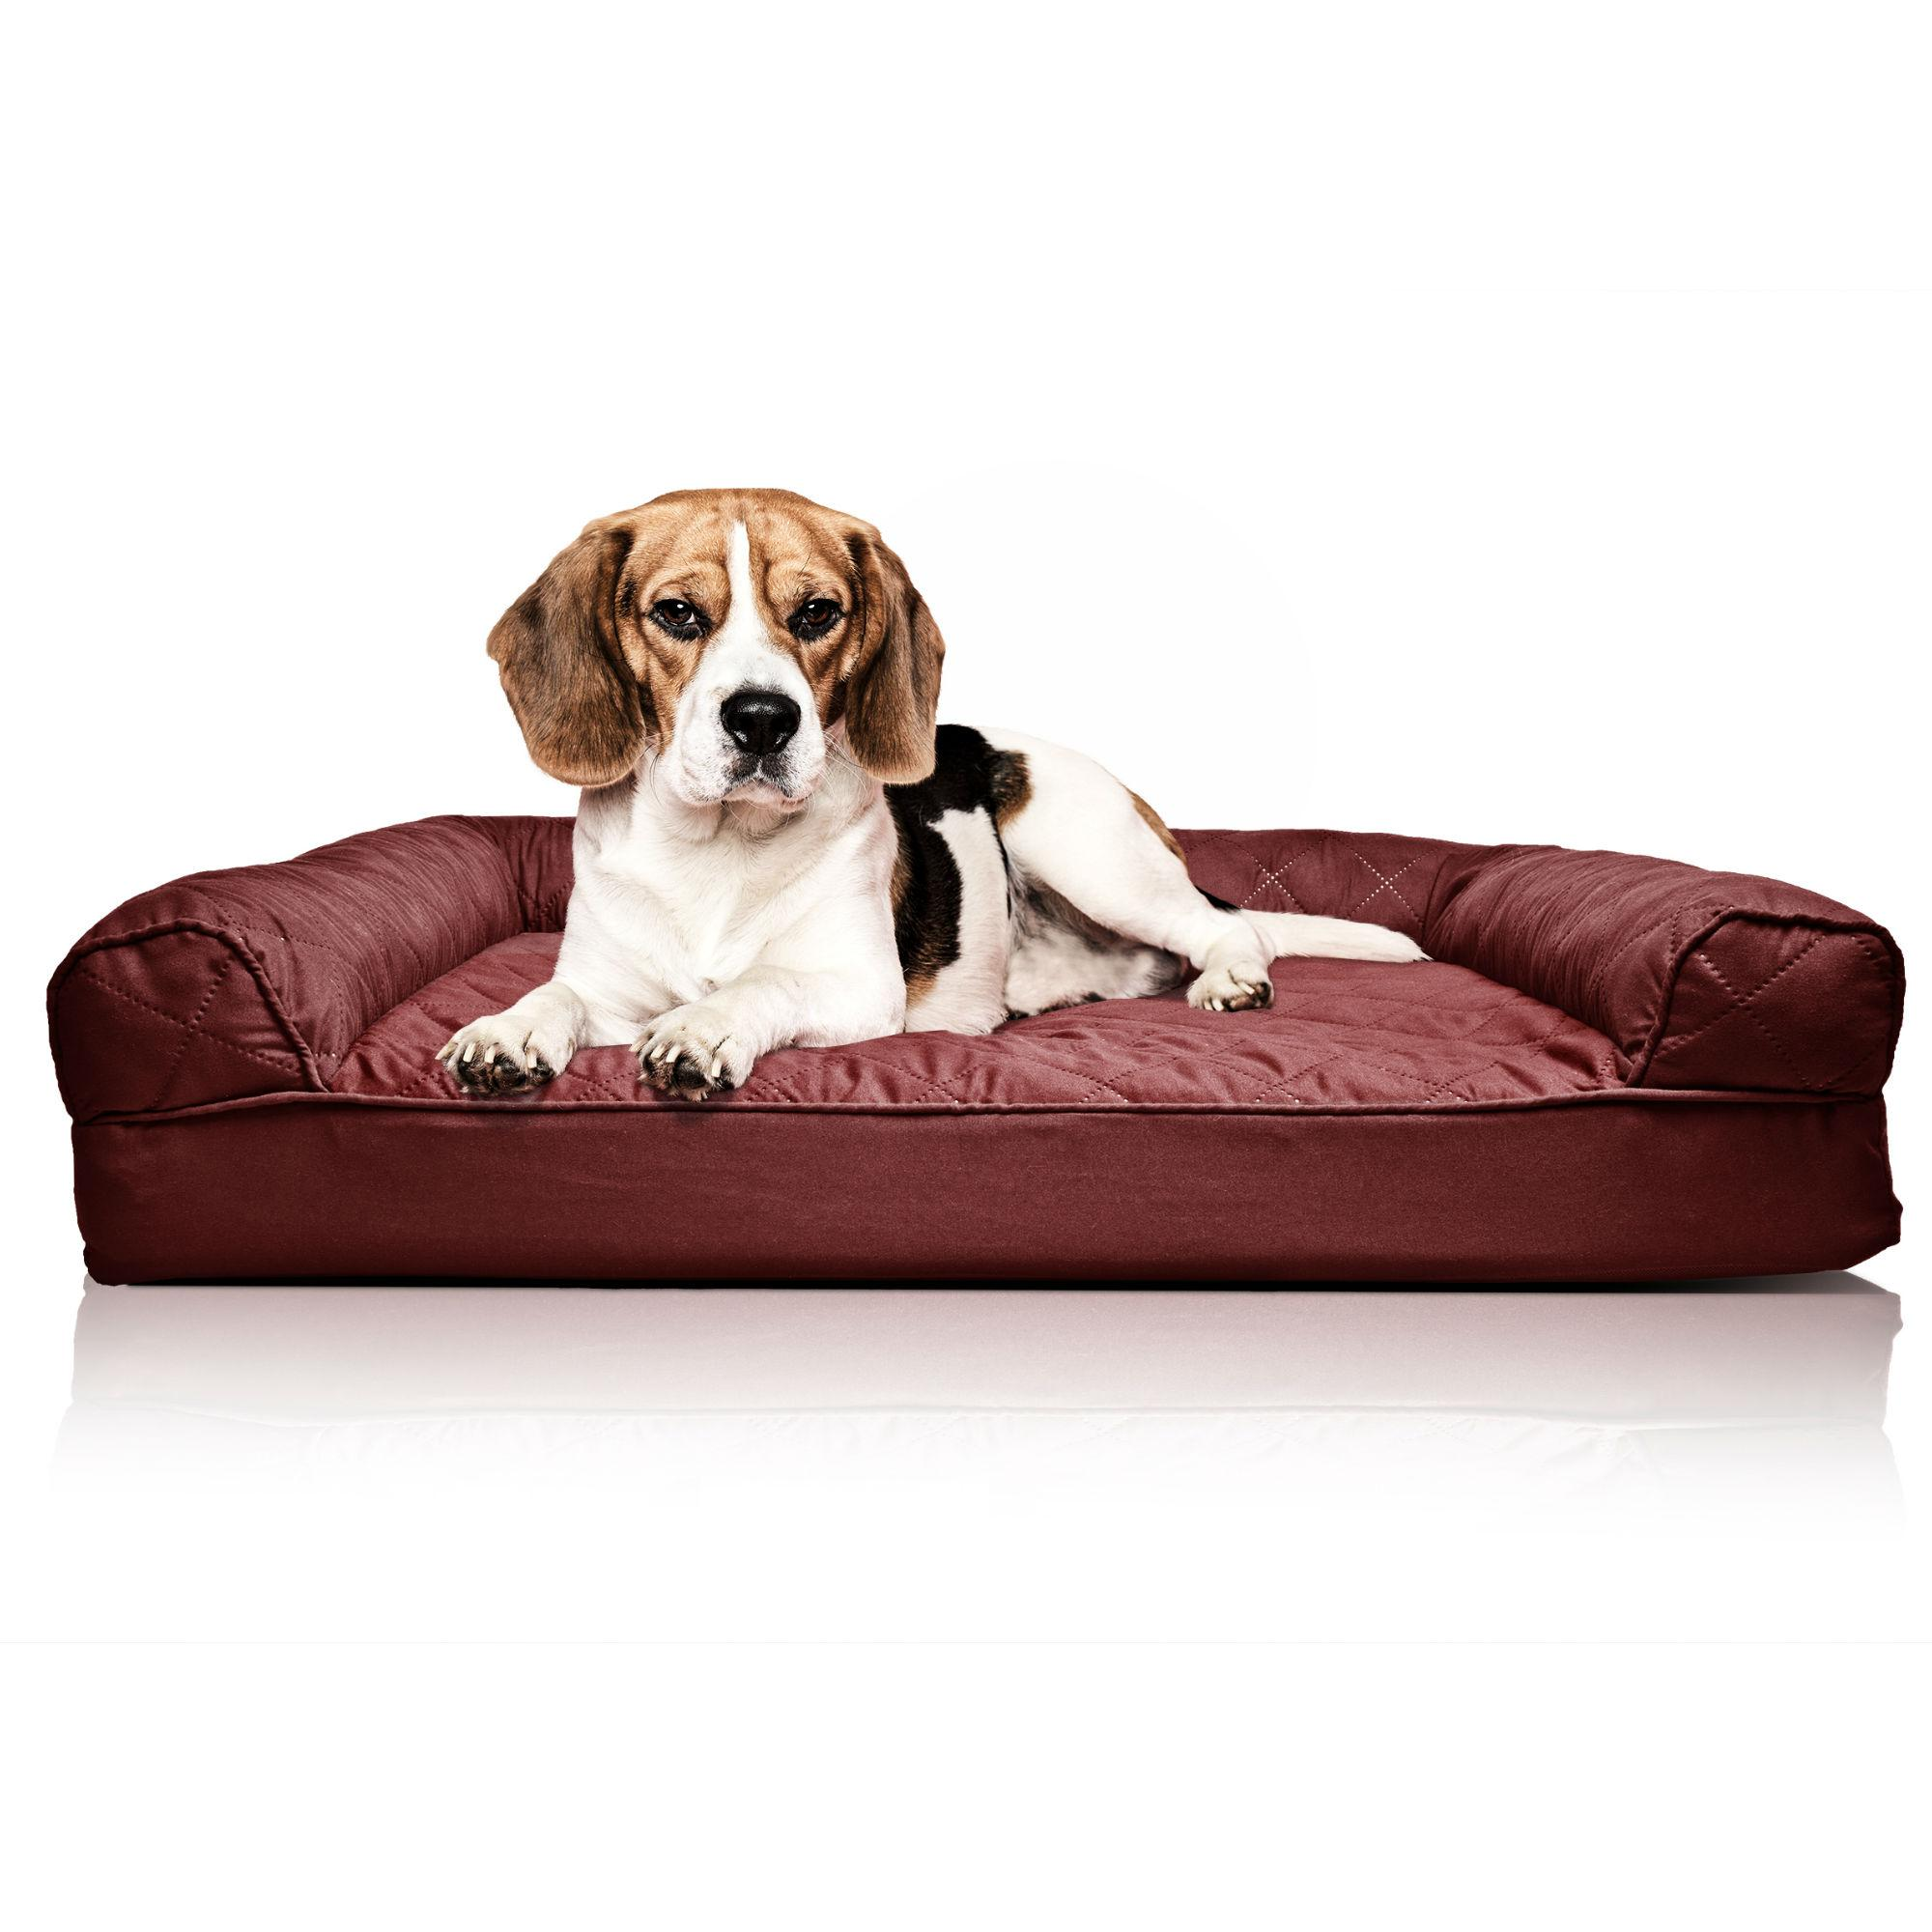 Furhaven Quilted Orthopedic Sofa Pet Bed - Wine Red